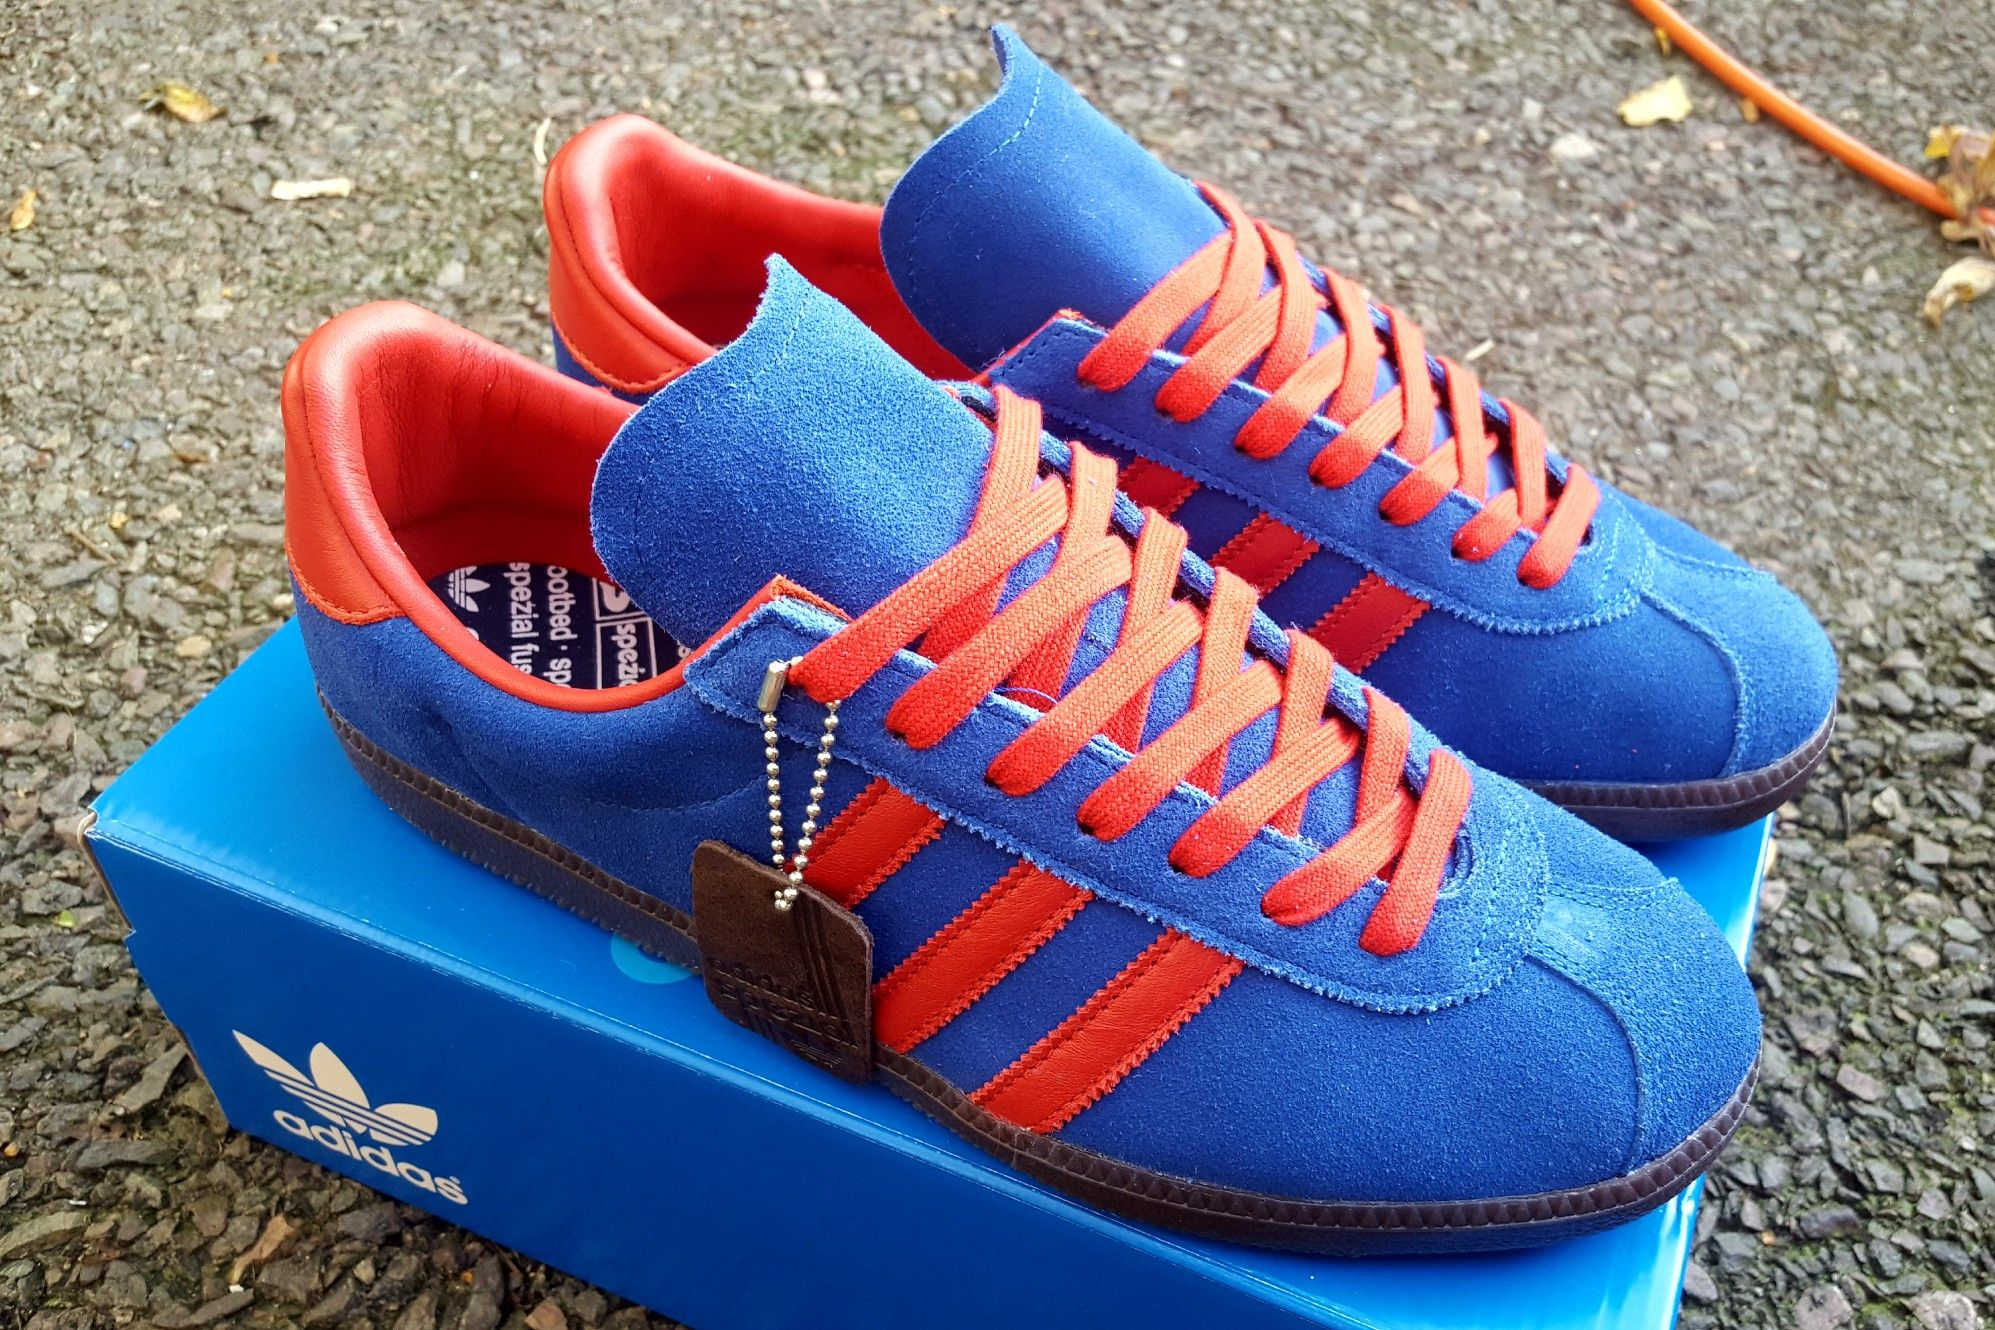 fd20982c0461 Adidas Spiritus Spezial 2017 look even better with the red laces ...